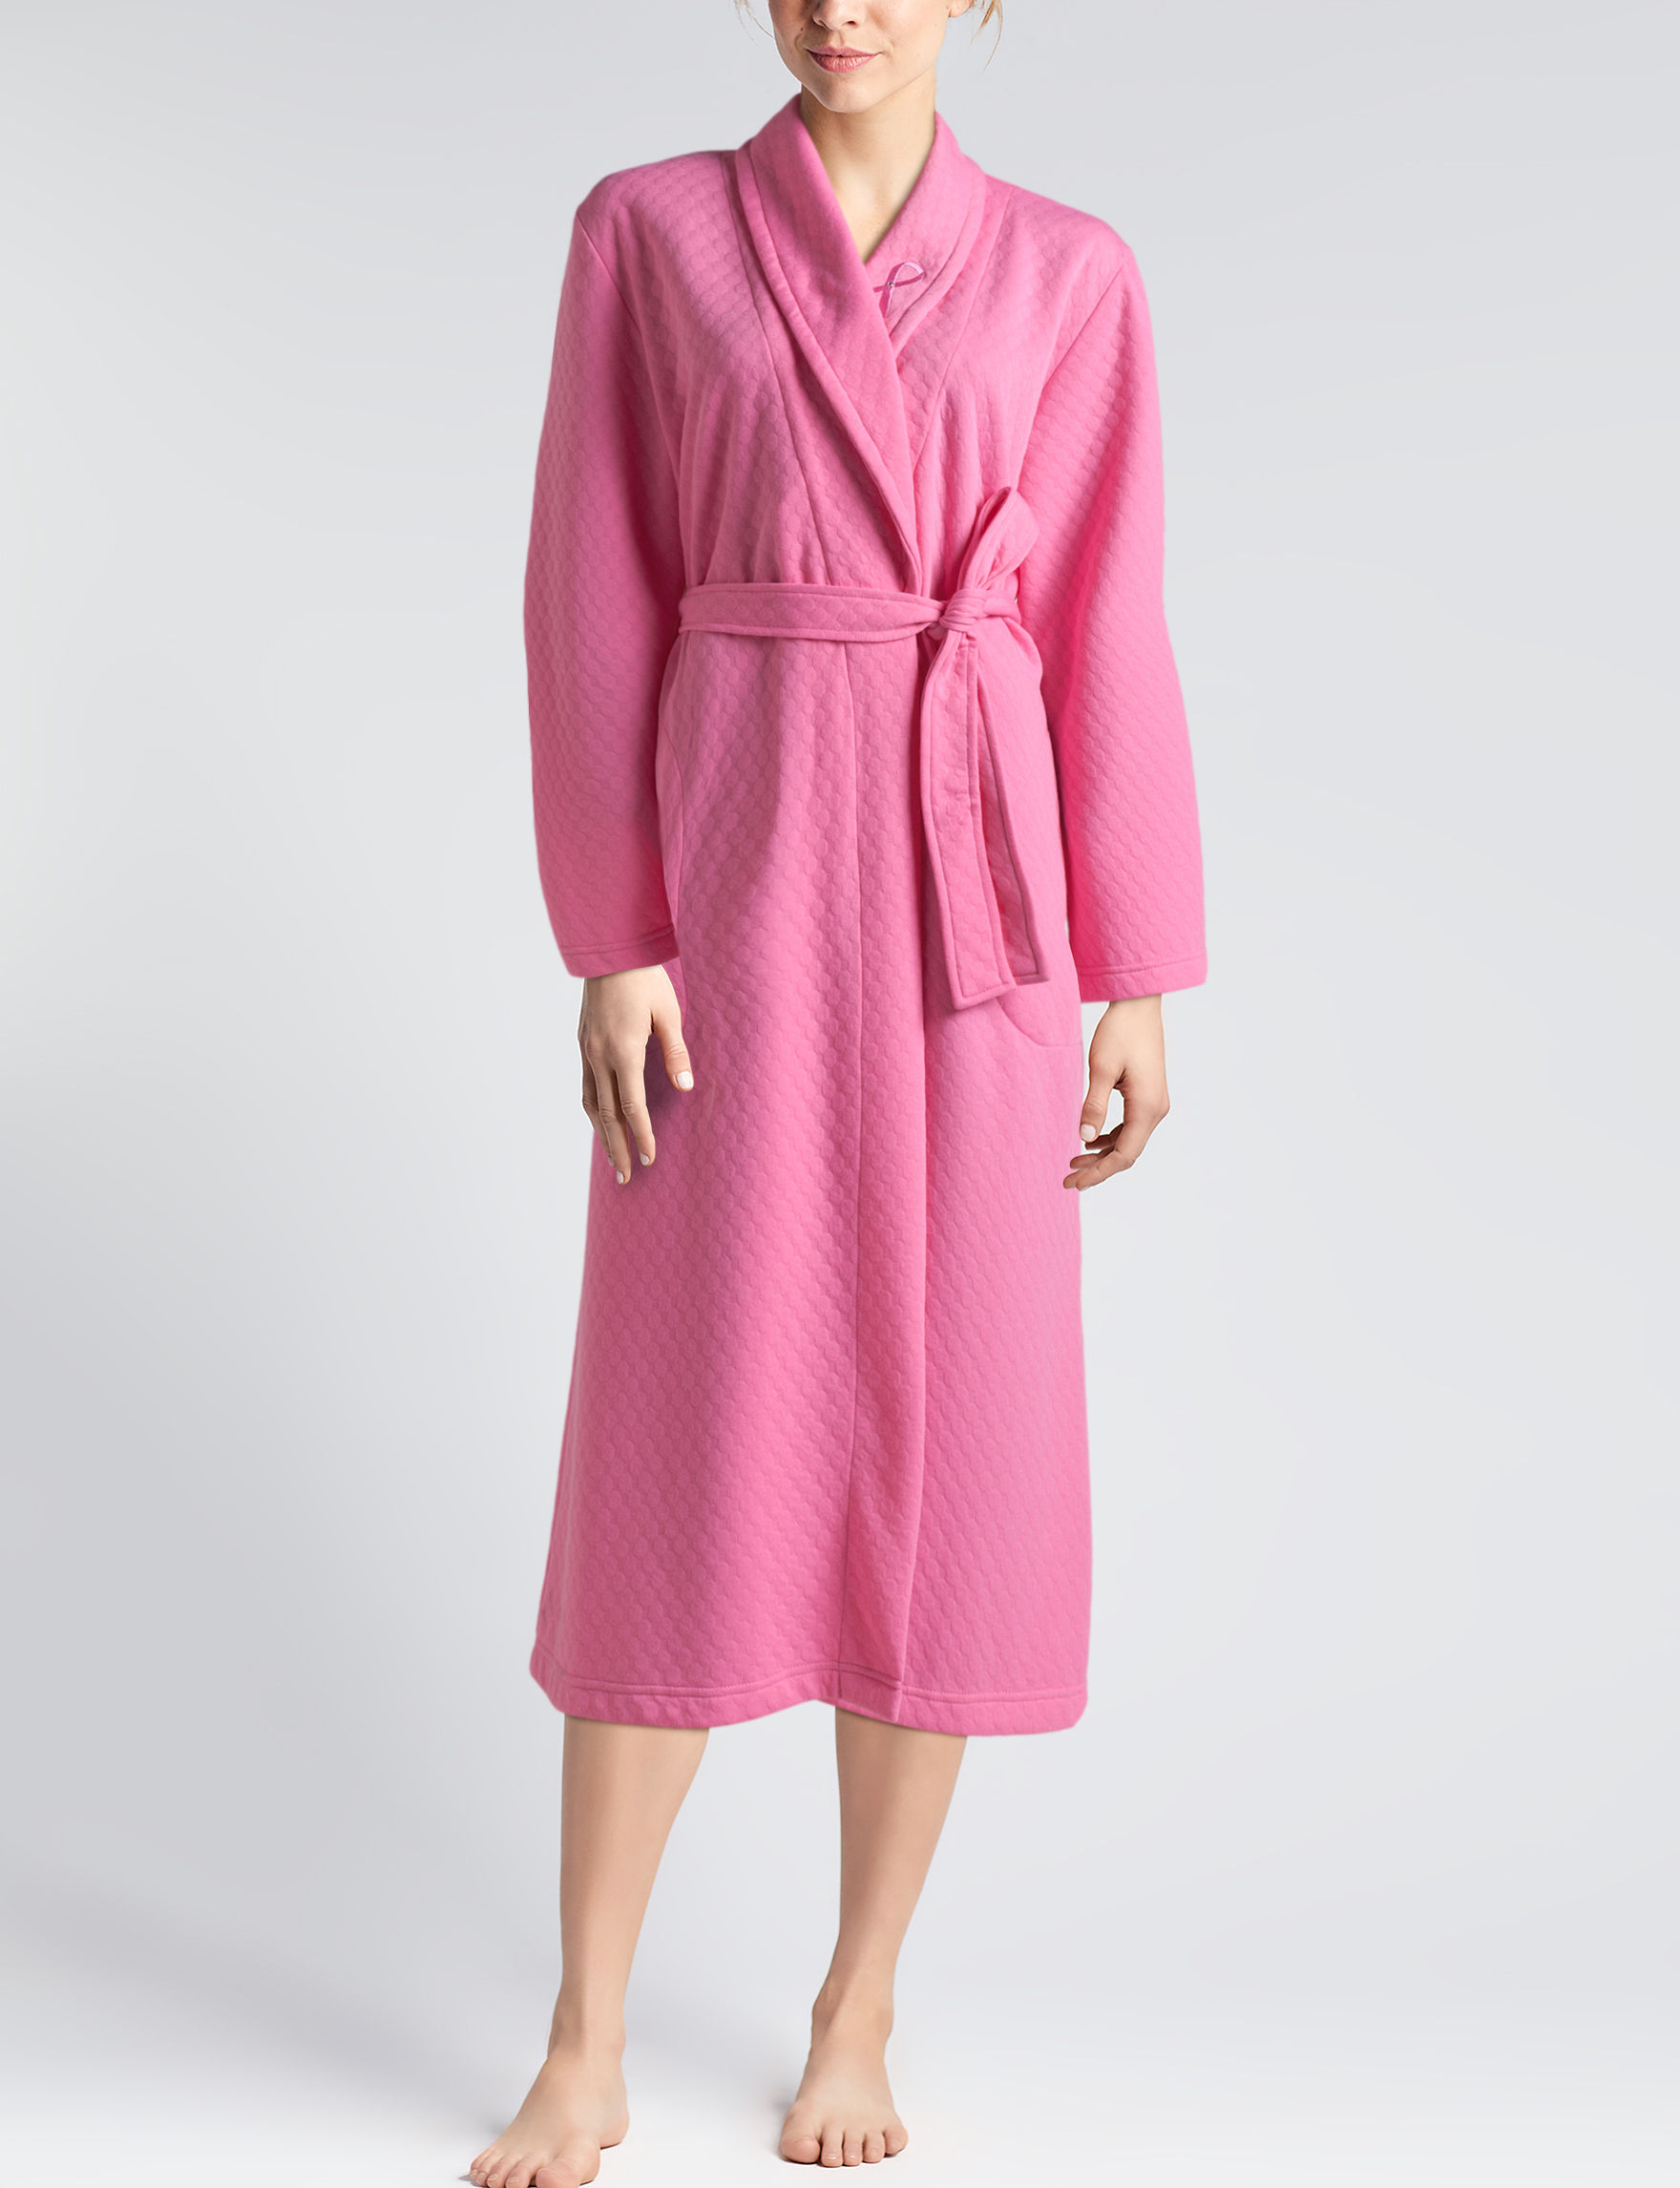 Hannah Pink Robes, Wraps & Dusters